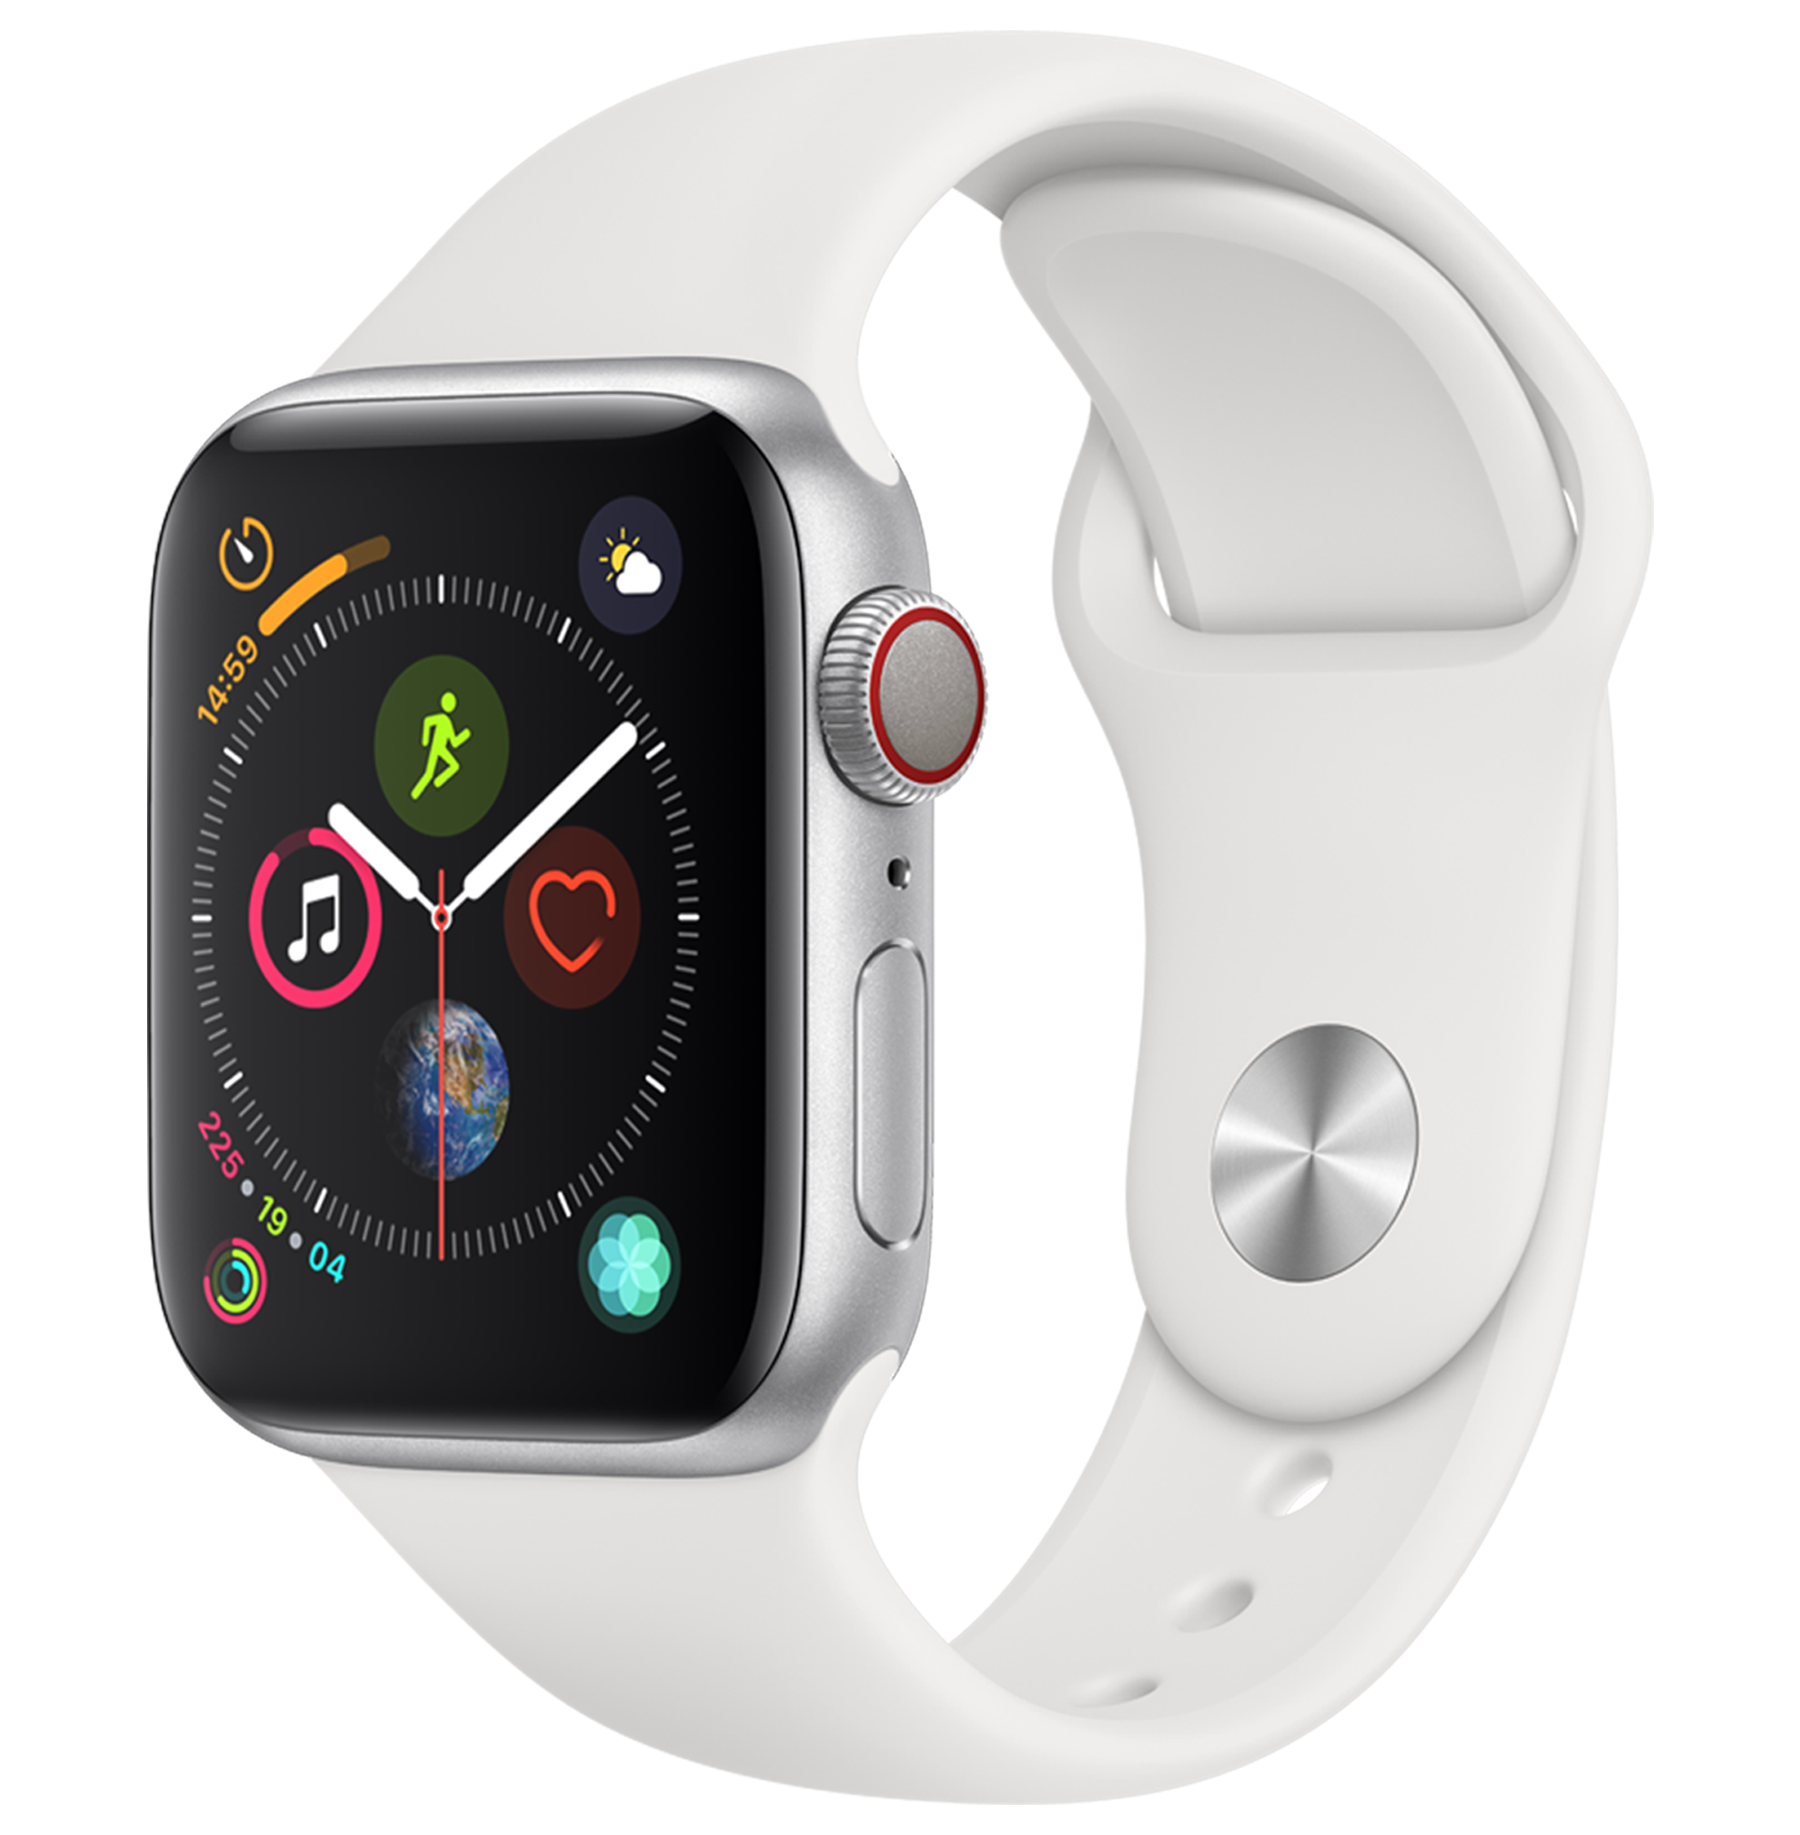 A front view of the Apple Watch Series 4 in Silver.